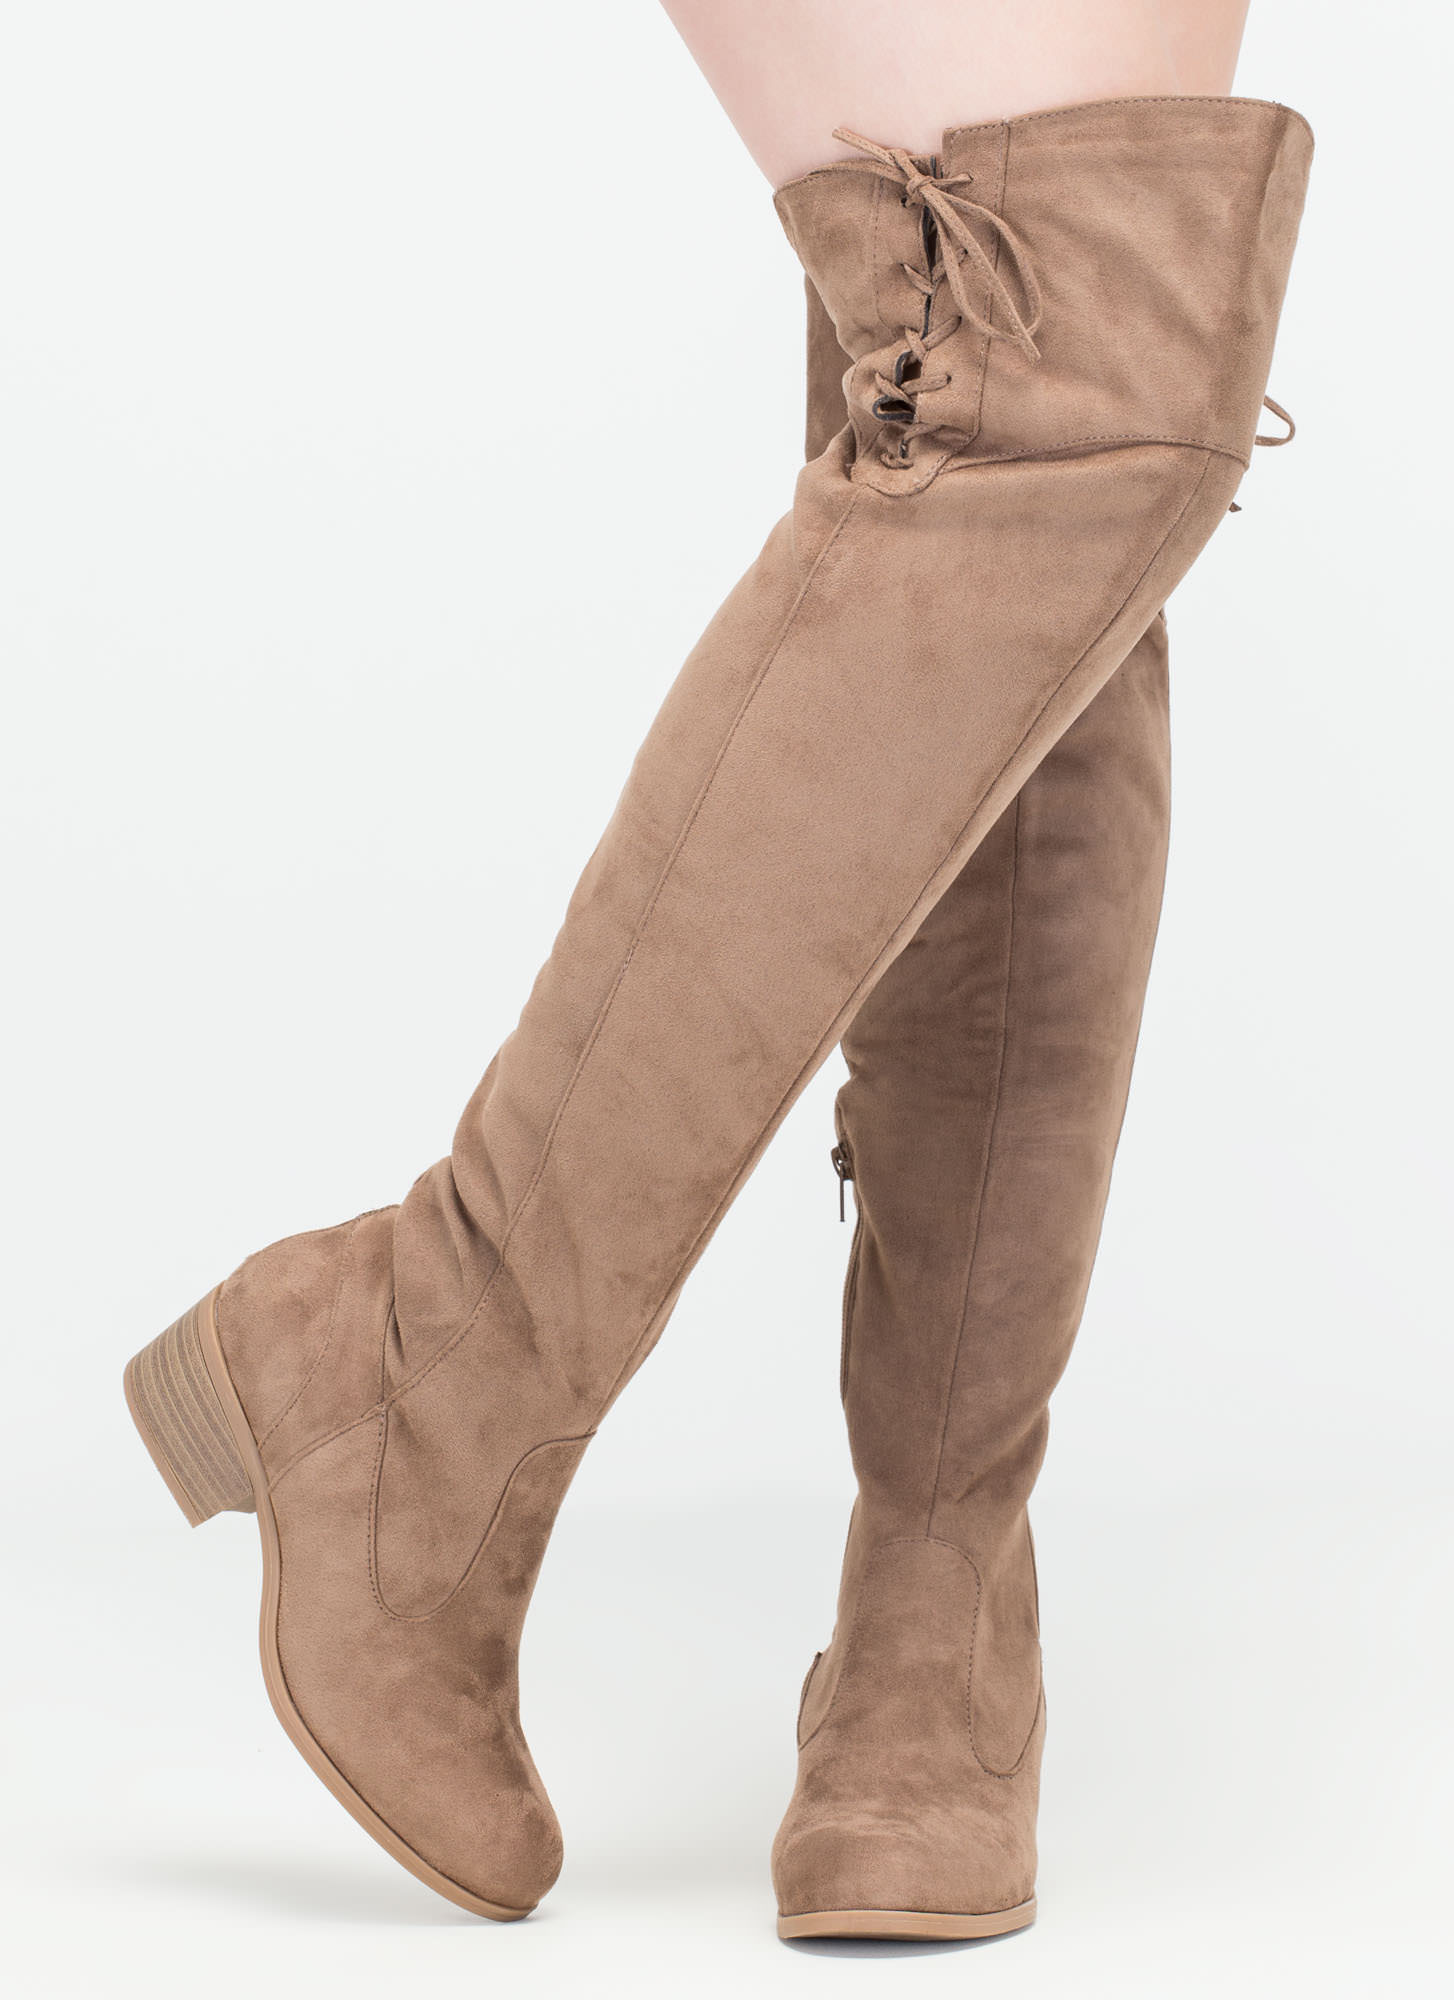 Top Style Laced-Up Over-The-Knee Boots TAUPE